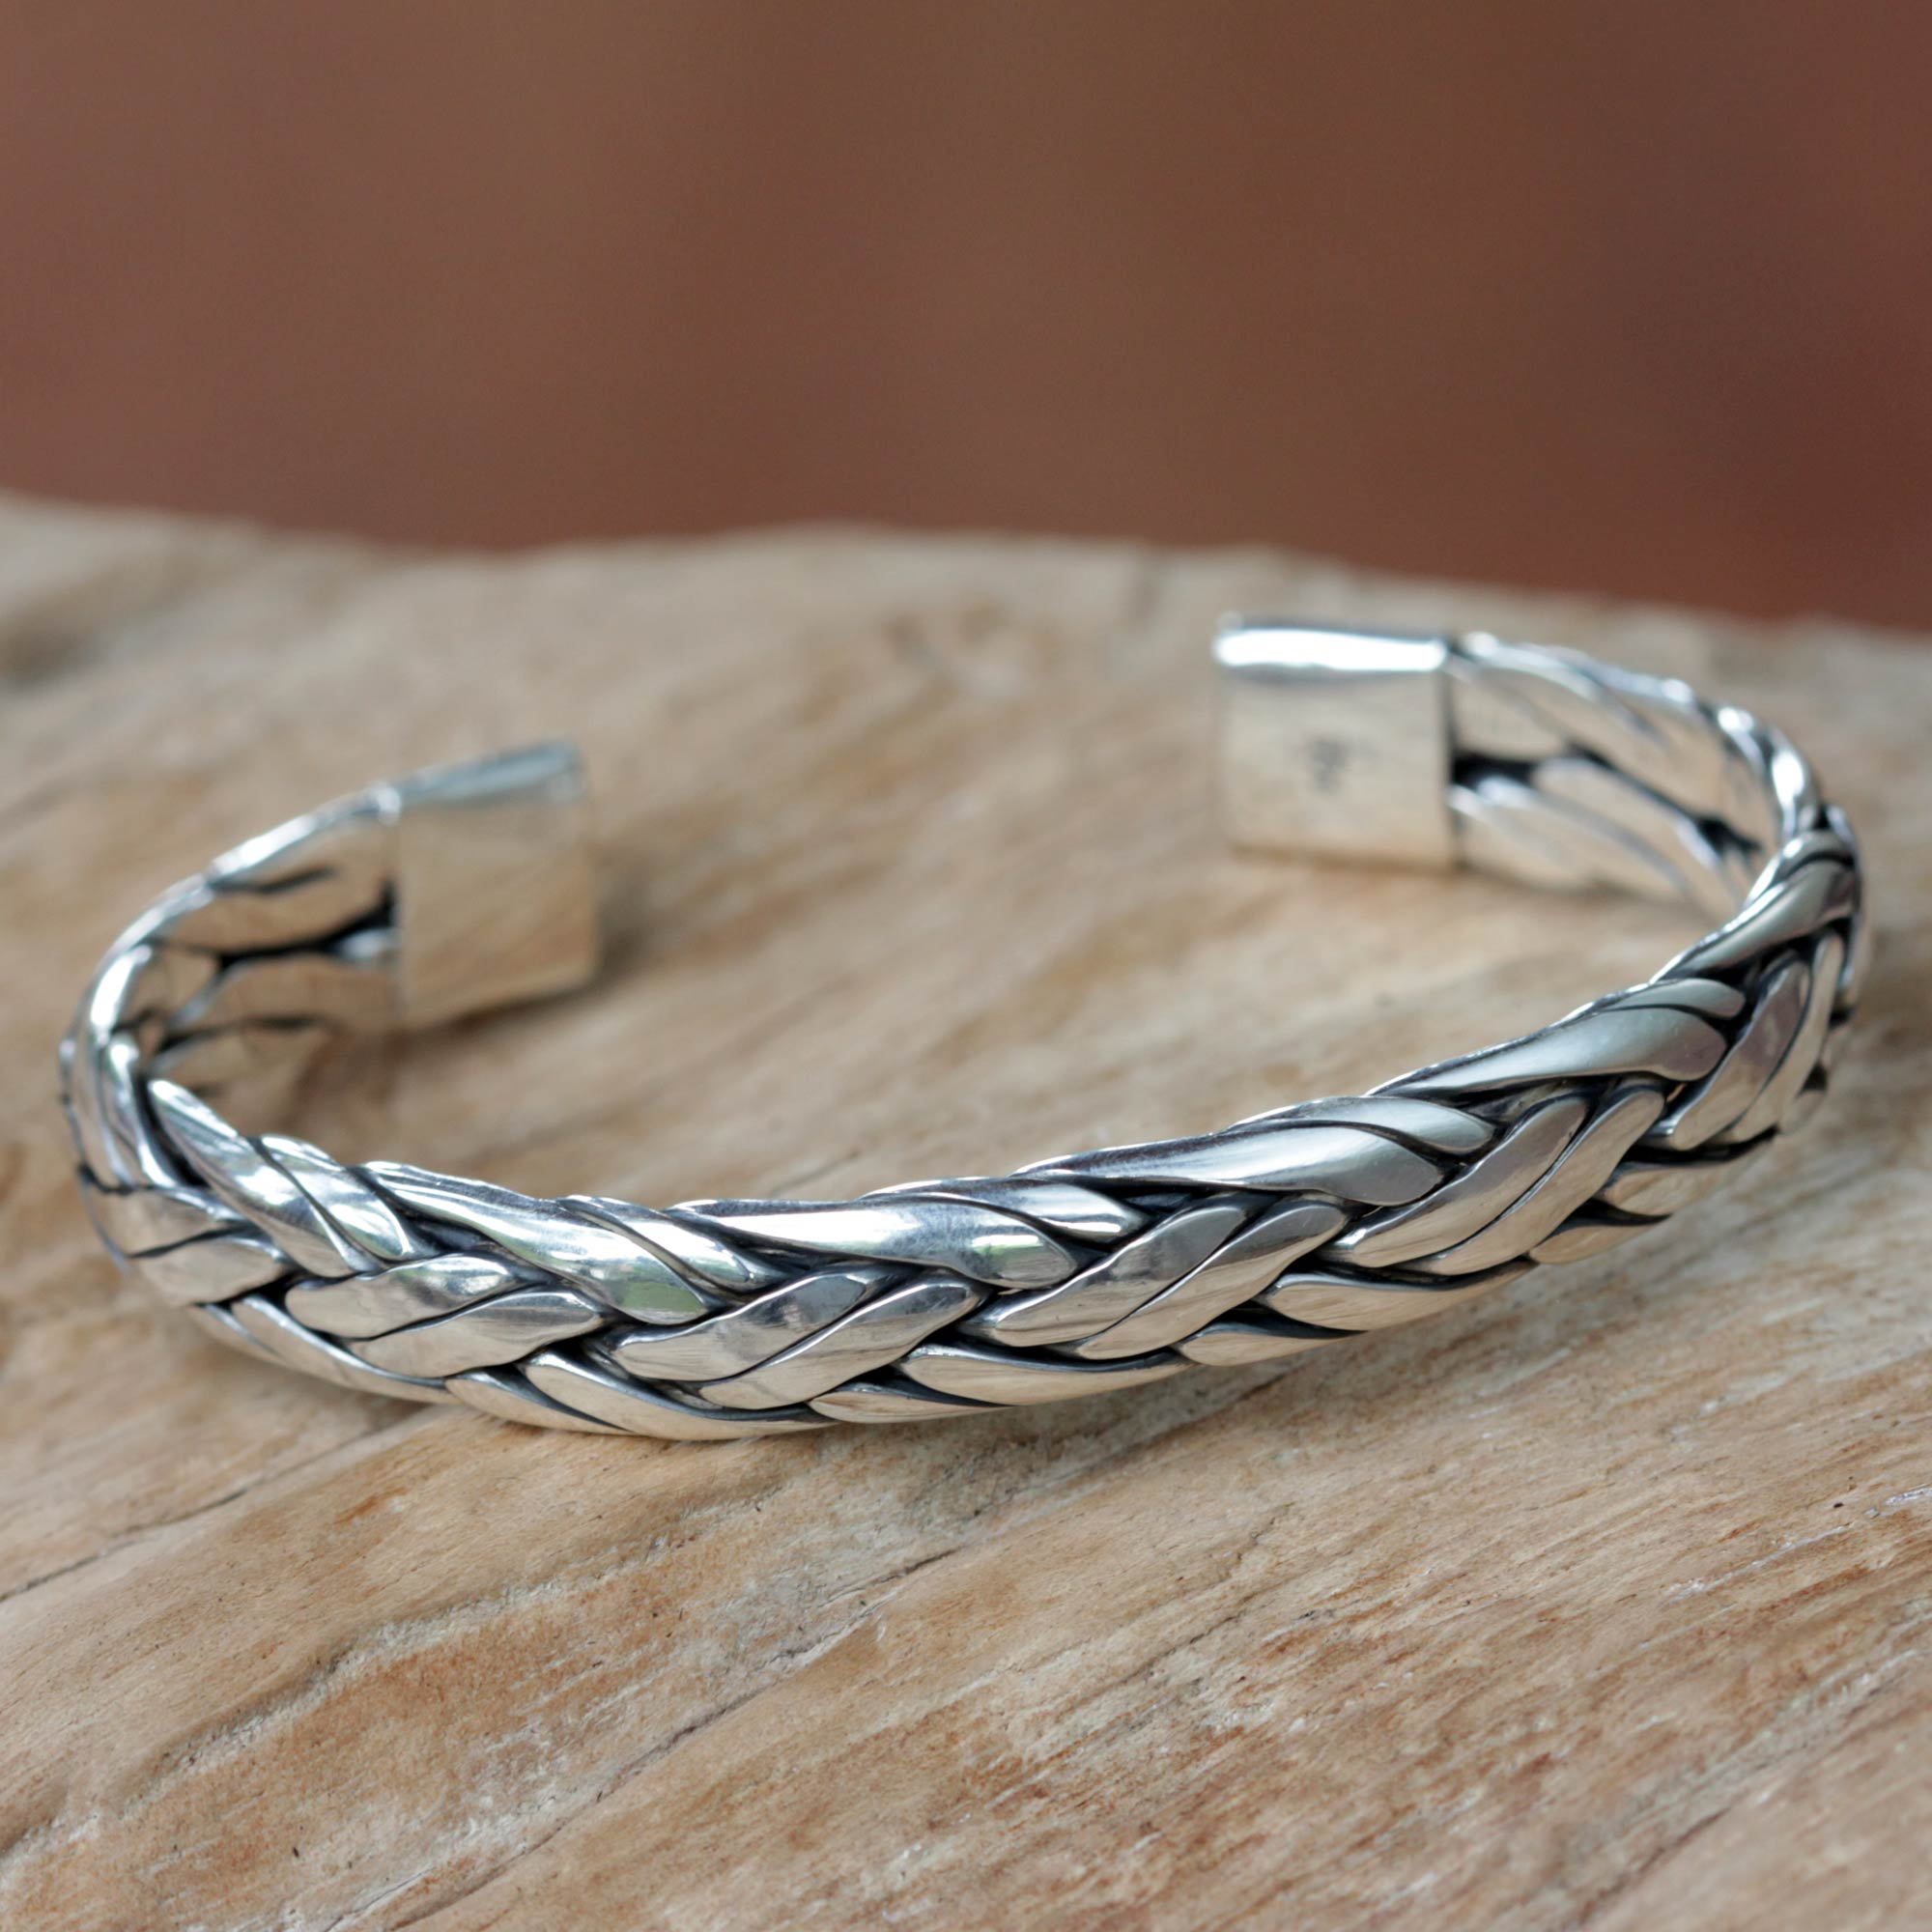 bracelet bracelets mix bangle bangles small silver fox